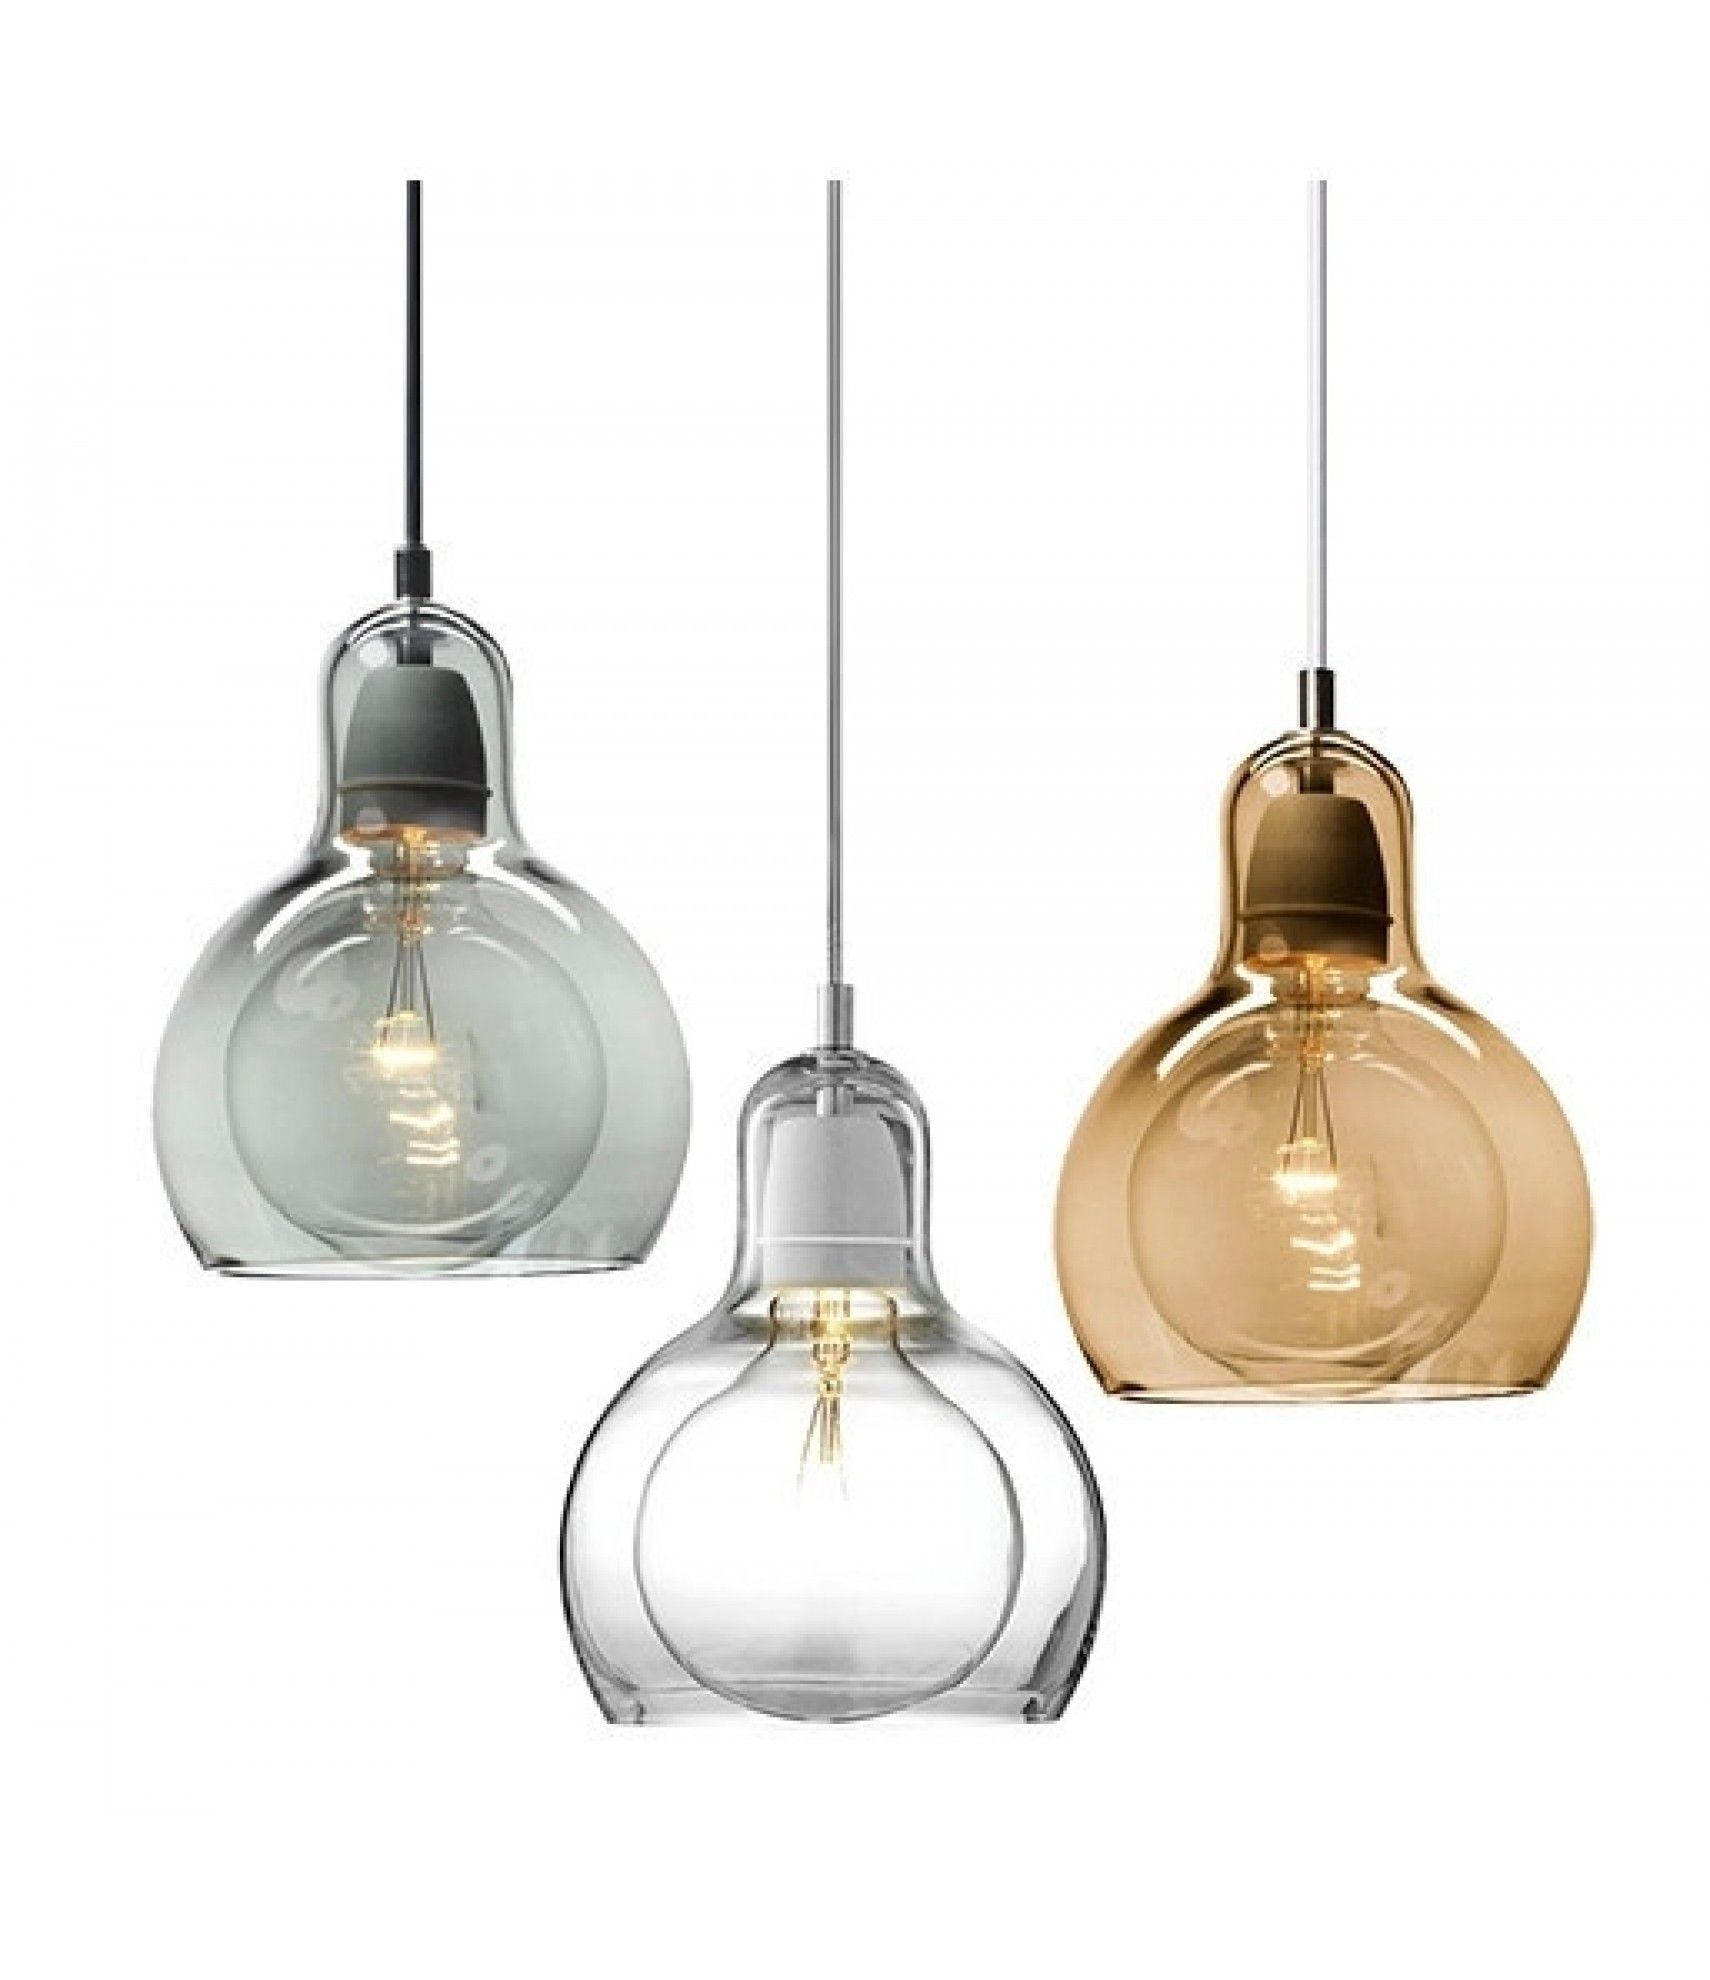 oksunglassesn hanging pendants jar fixture of luxurius light lights pendant us bulb set mason